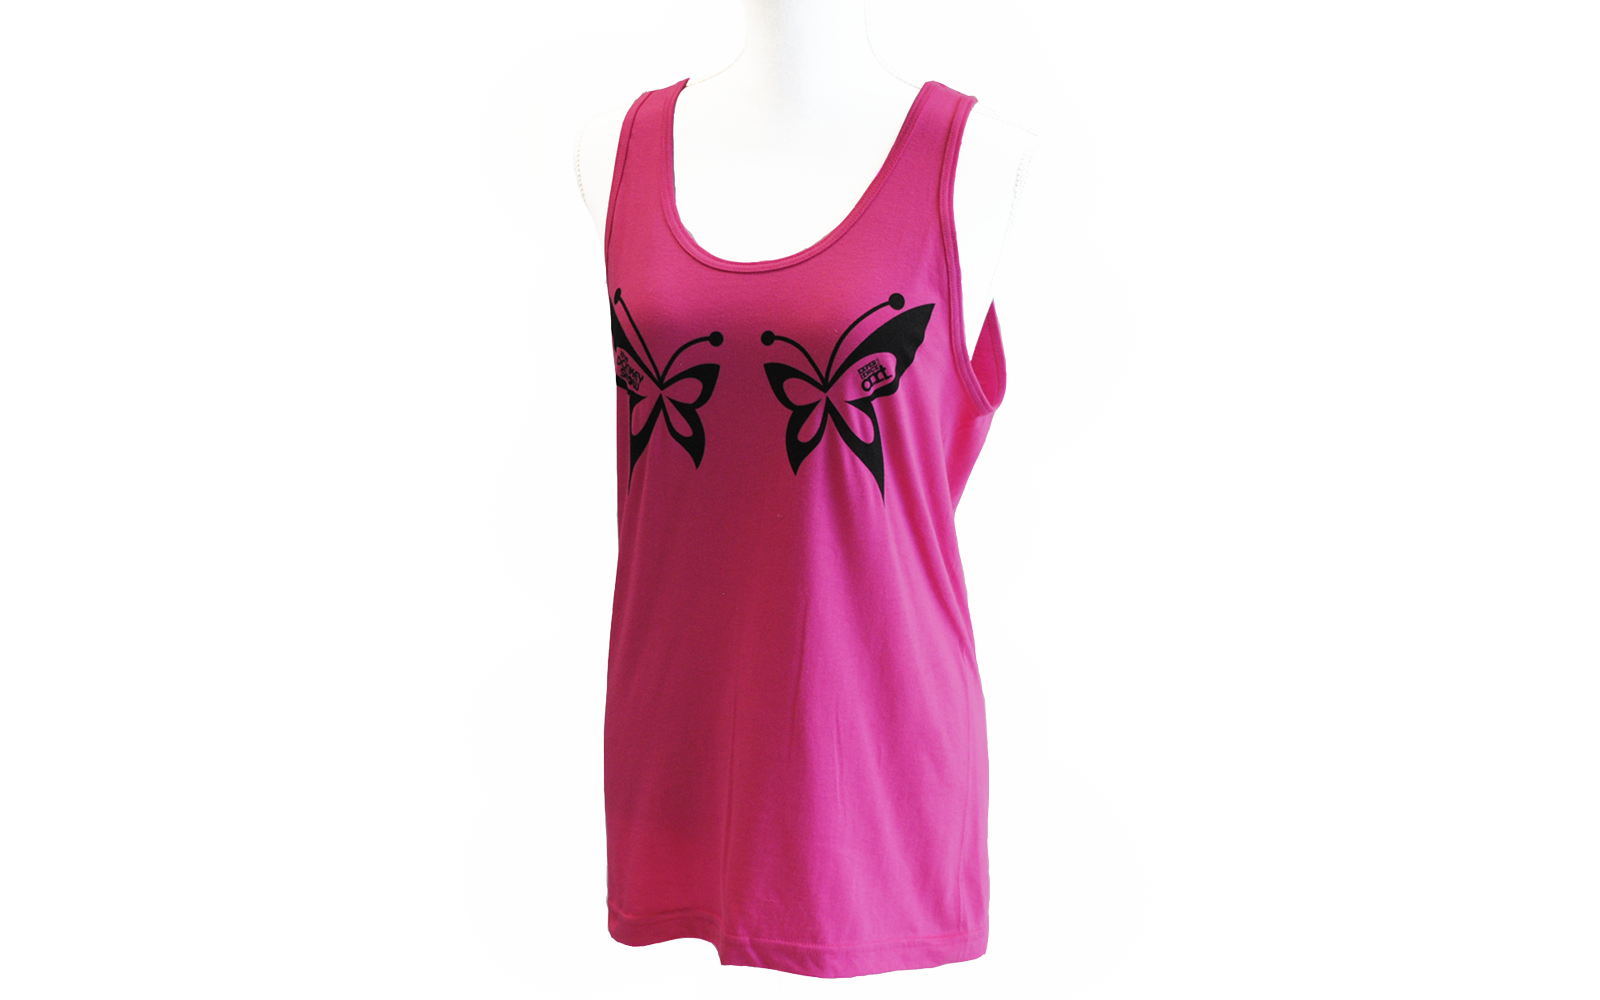 Pink tank top with two butterflies printed on the breast.